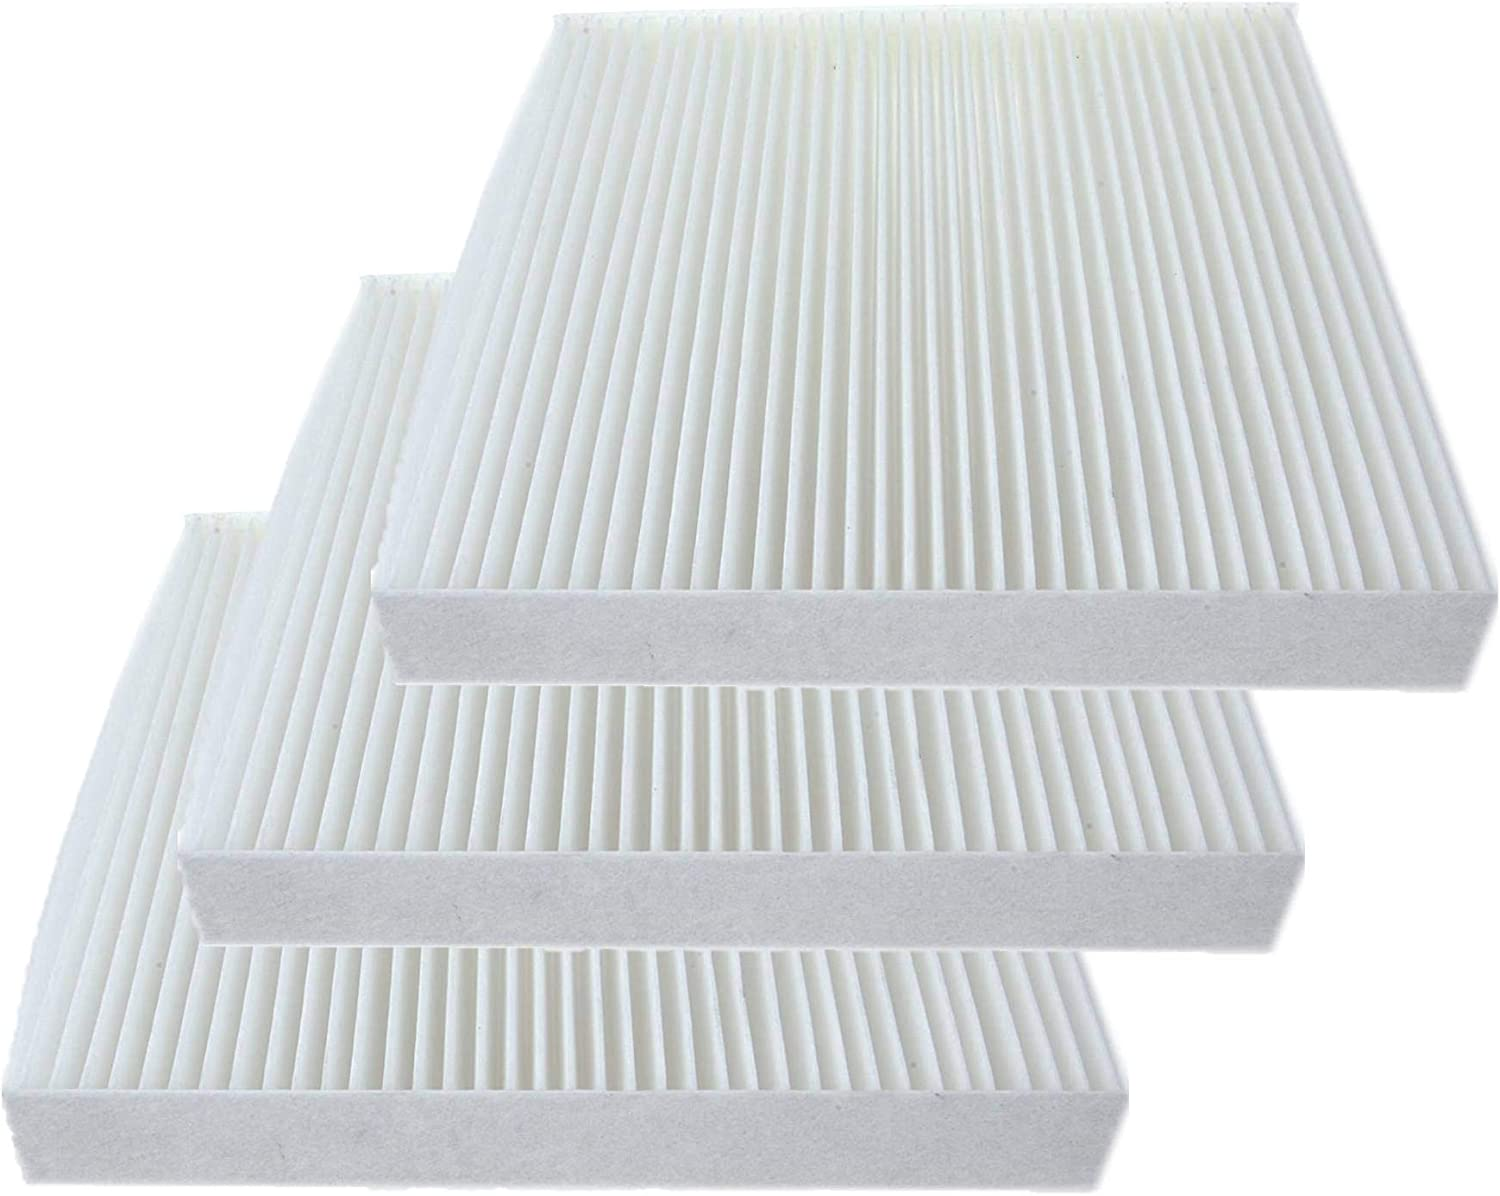 ,Insight ,CR-Z 2017 2016-2018 2009-2018 2011-2016 2010-2014 Cabin air filter for Honda Civic 2016-2018 Replacement for CF11182,CP182 Fit HR-V ,CR-V